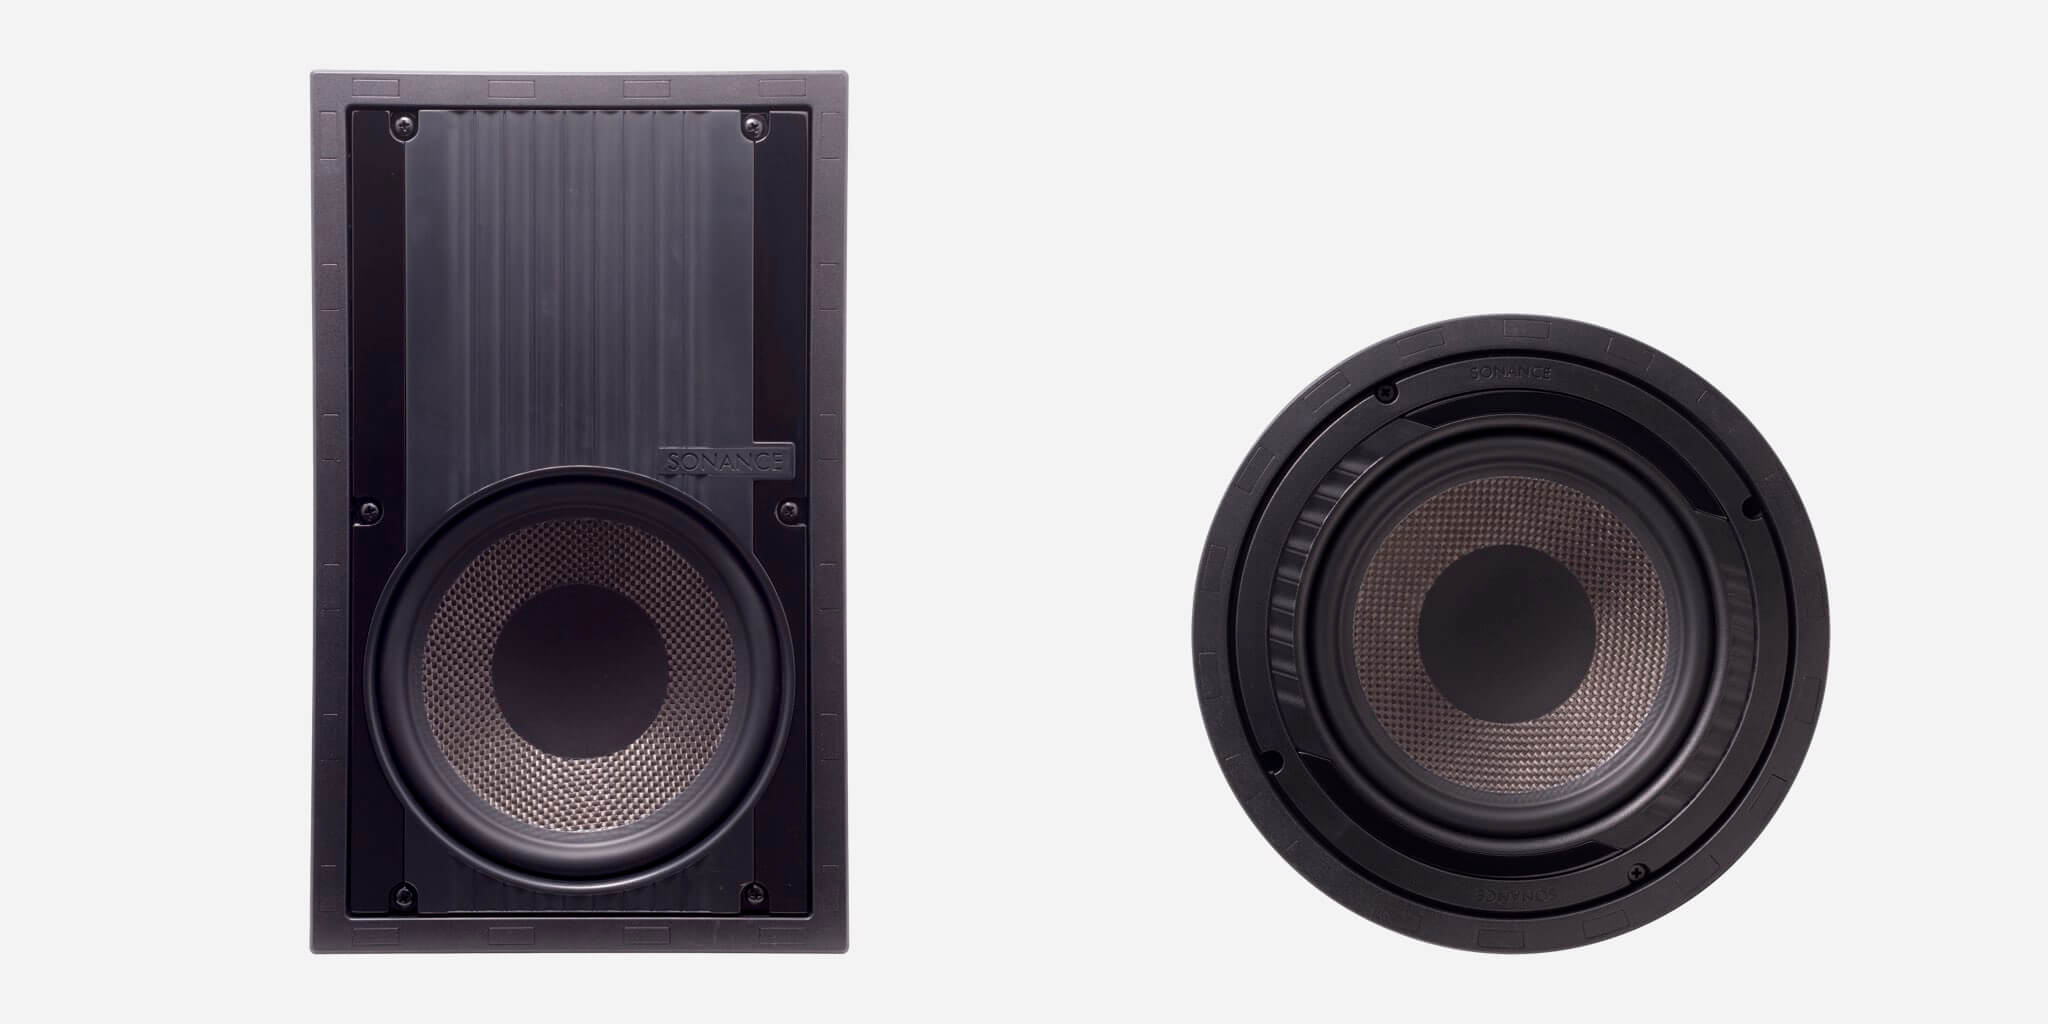 Sonance Visual Performance_Product_VP85x_Woofers_JPEG_2048x1024_60%